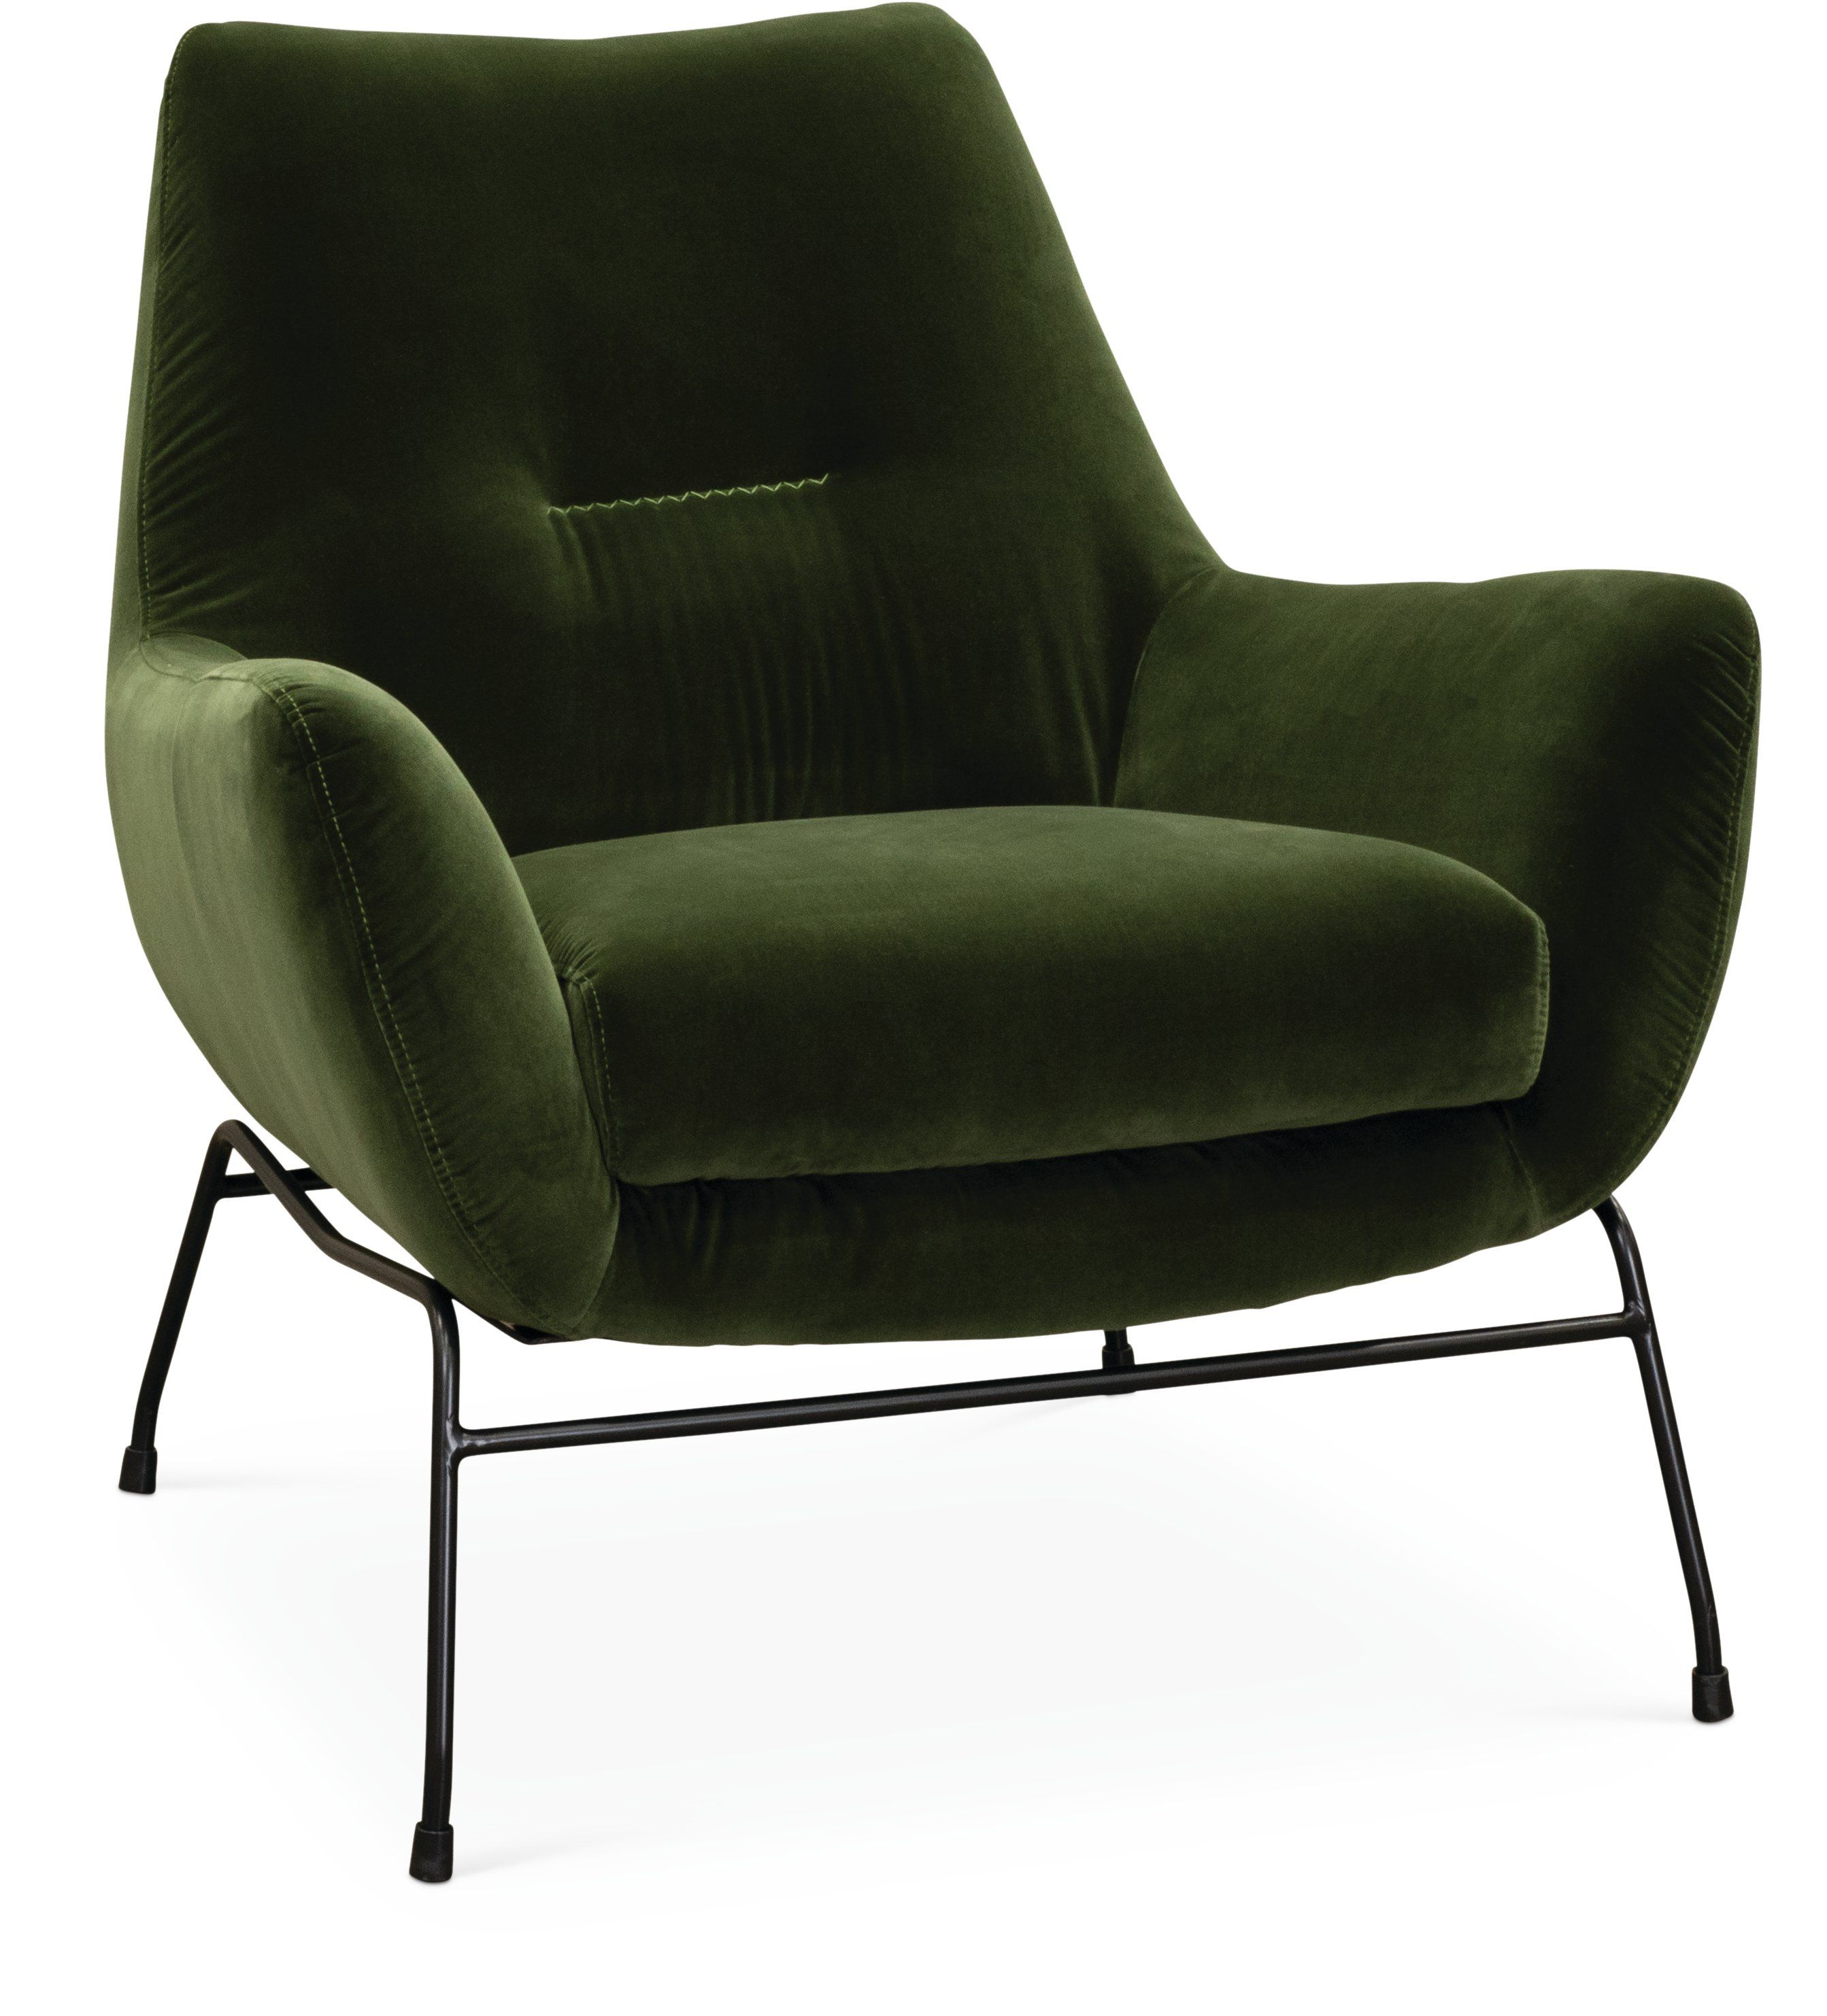 Mid Century Modern Olive Green Accent Chair Falkirk Rc Willey Furniture Store Green Accent Chair Green Armchair Green Chair